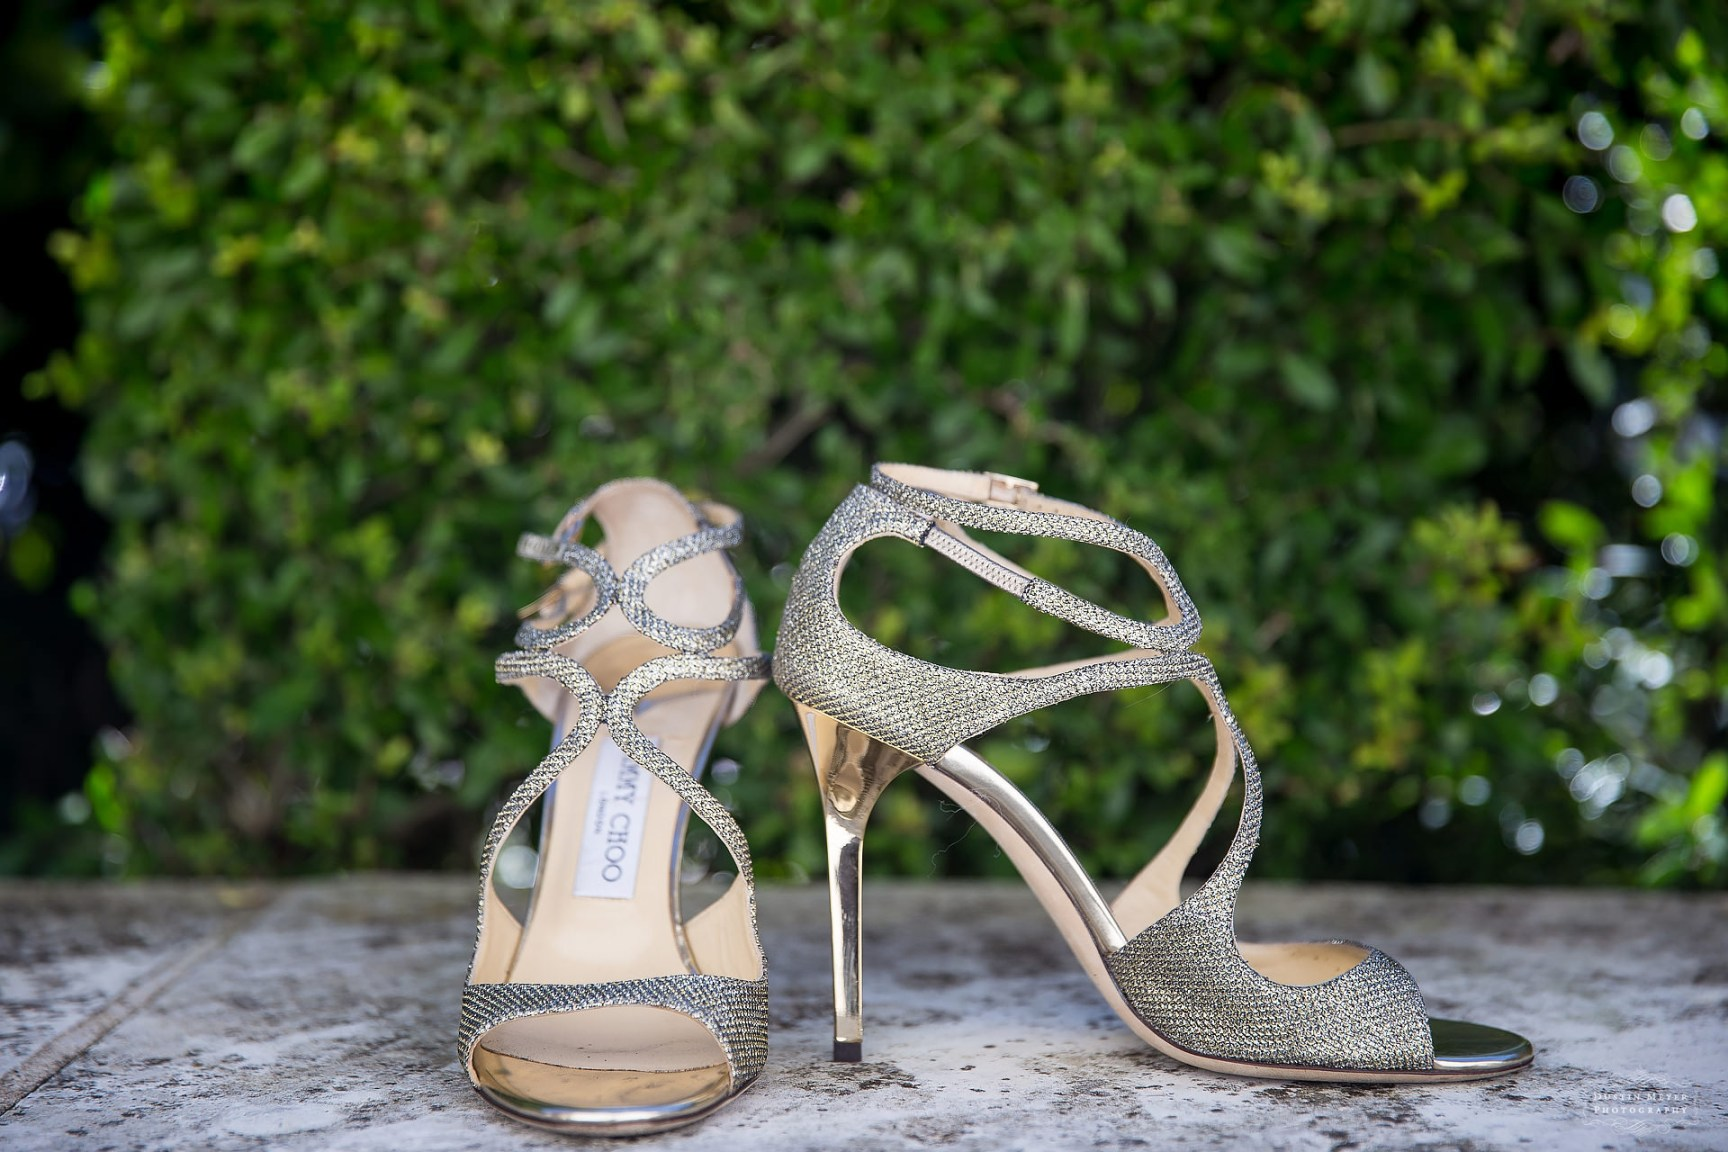 stunning jimmy choo bridal wedding shoes with straps studded encrusted with diamonds